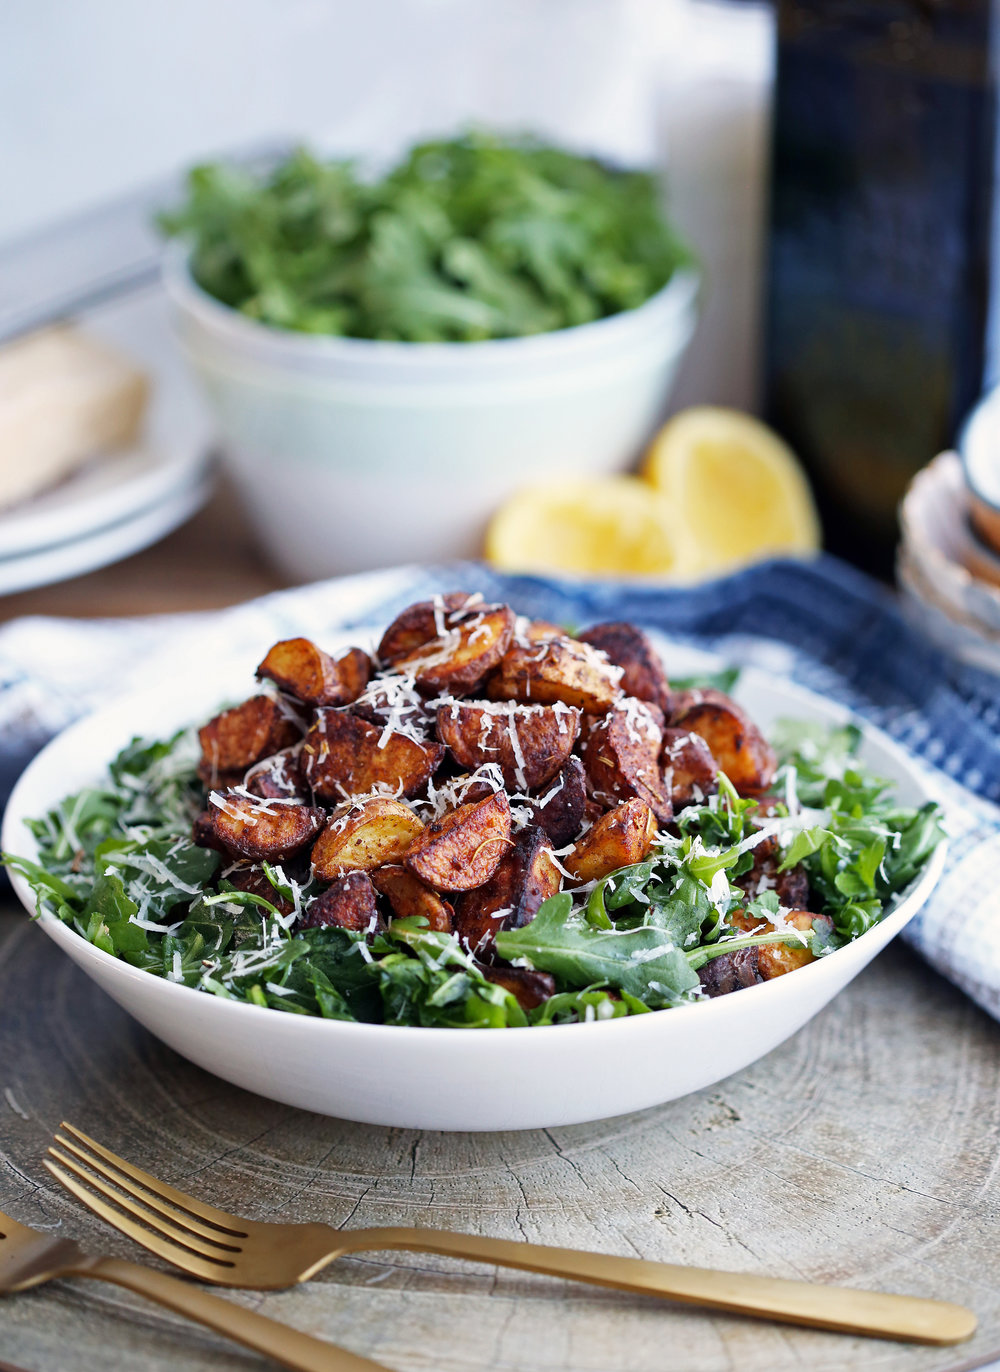 Crispy roasted spiced baby potato and arugula salad topped with parmesan cheese in a large white bowl.